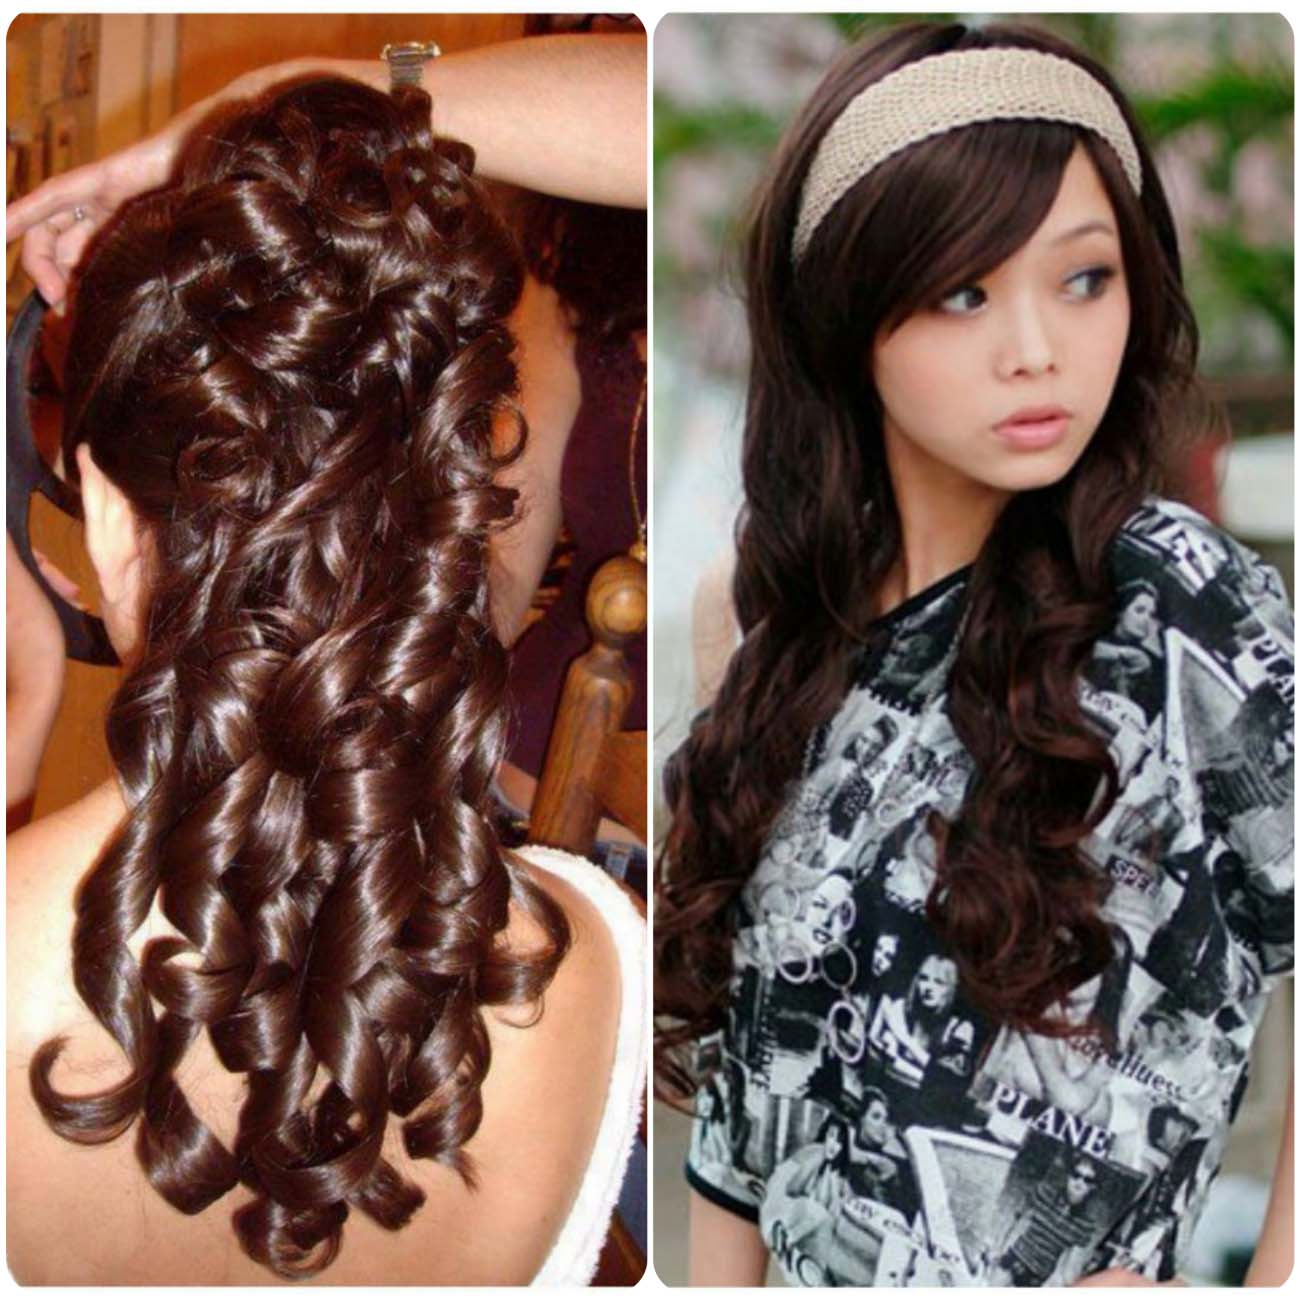 Open-curly-hairstyles-4-714x1024_Fotor _Collage